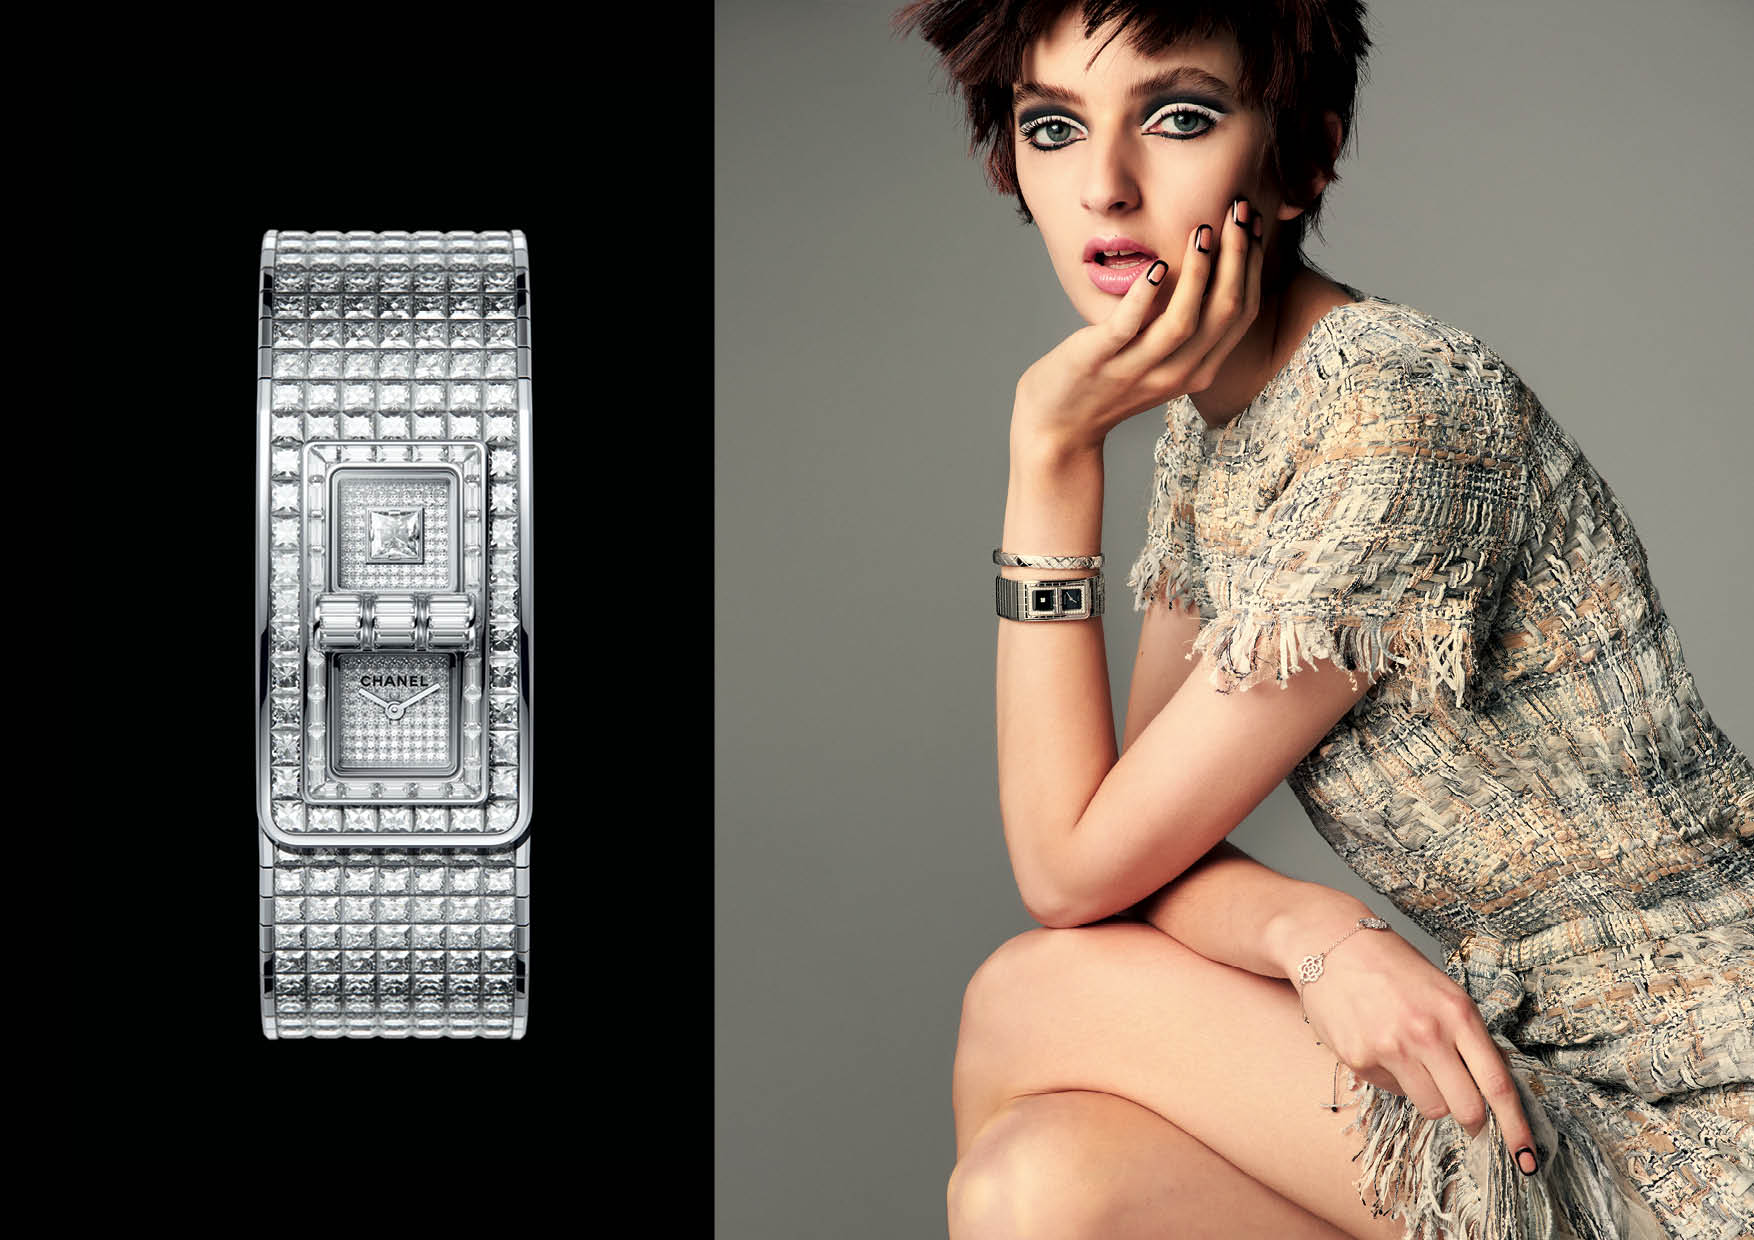 Code Coco: The most Chanel watch ever designed